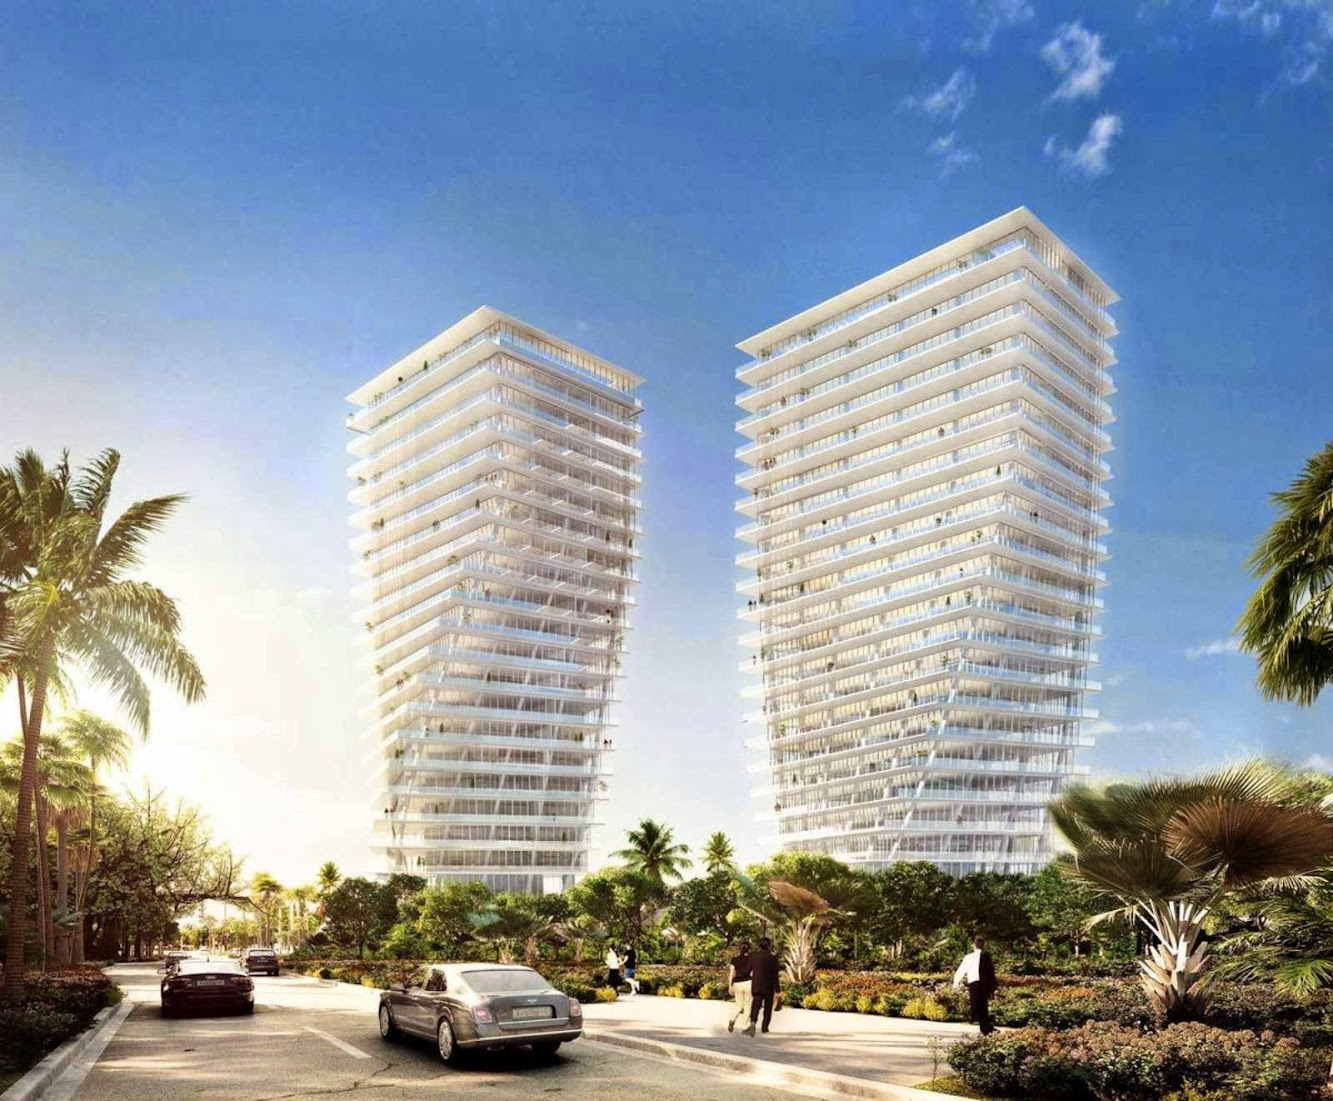 Grove at Grand Bay residences by Big